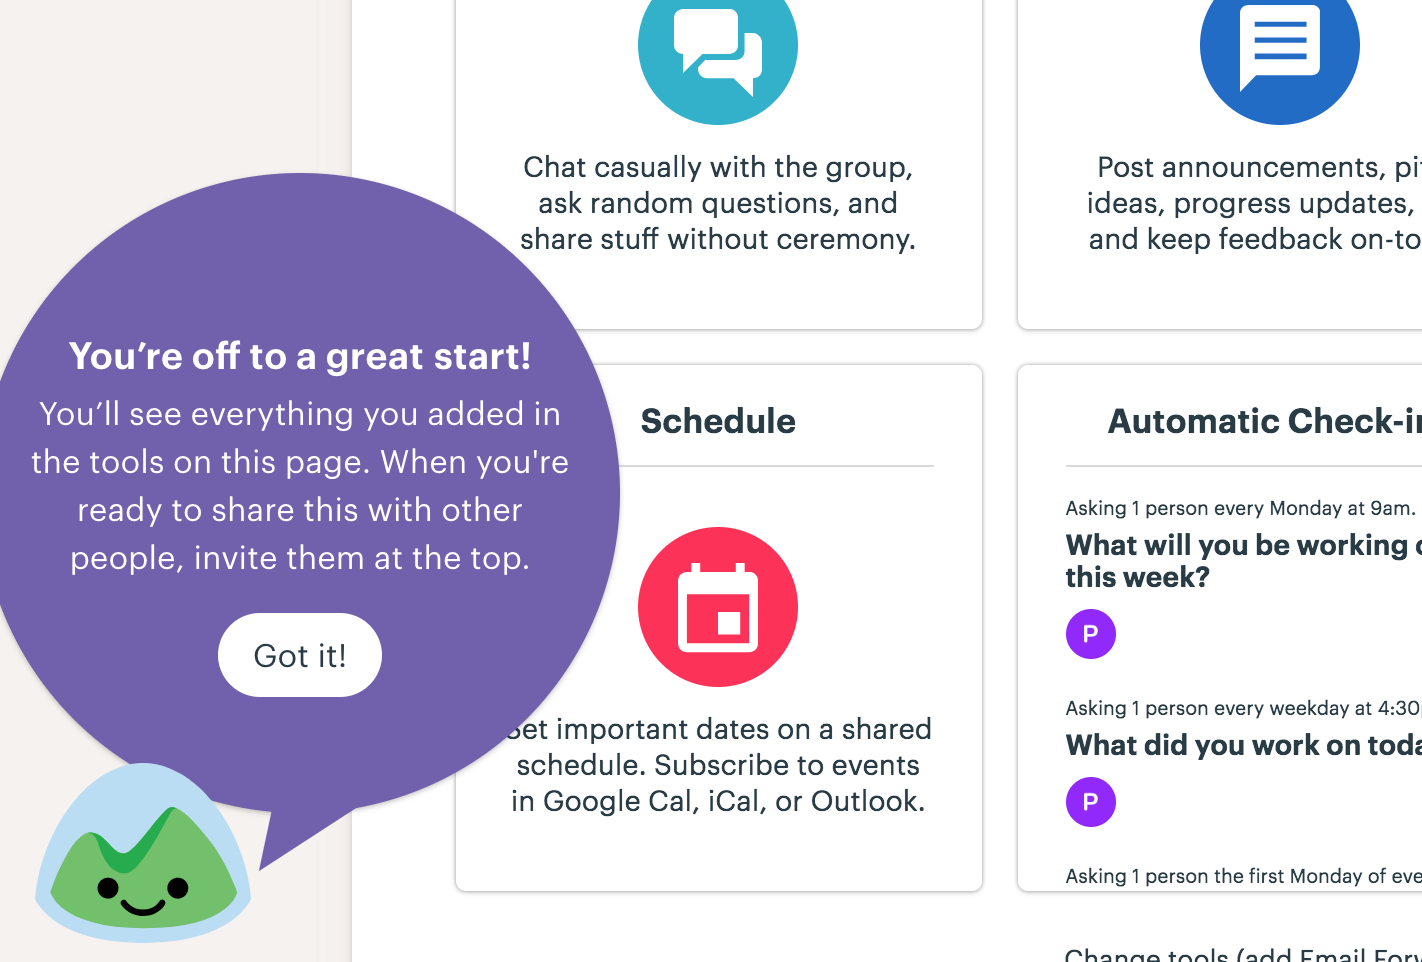 this is a screenshot image of basecamp's sample base that demonstrates value and guides users toward their activation event. this screenshot image focuses on basecamp's mascot and tooltip